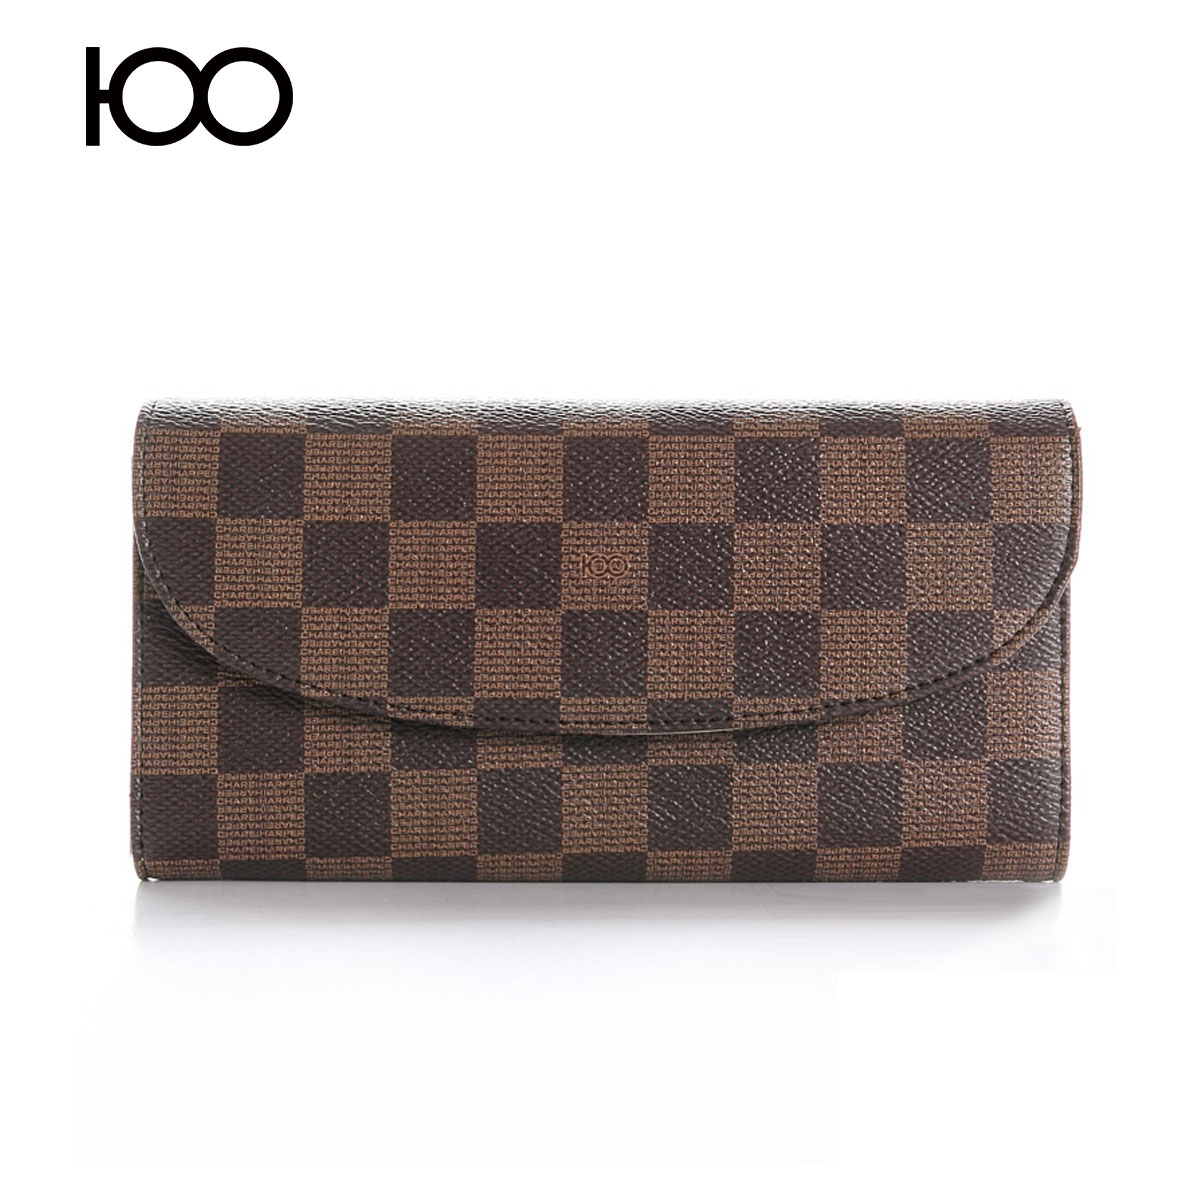 Ms. wallet female long section of the new fragrance naiha european and american women's plaid quilted leather wallet folded wallet